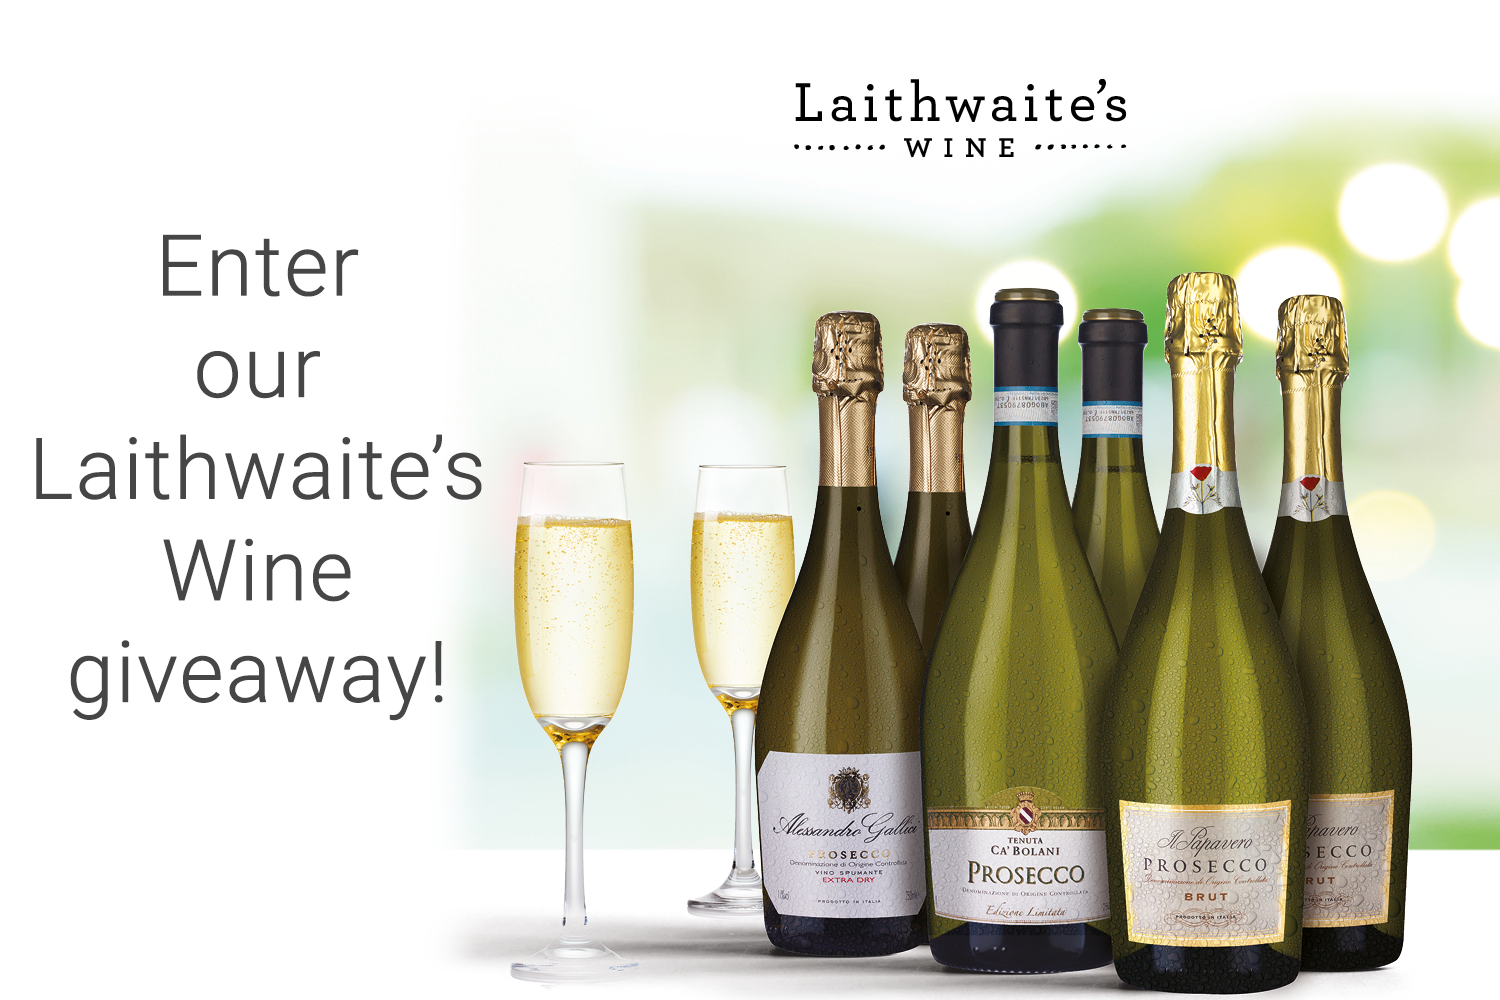 Enter our Laithwaite's wine giveaway!